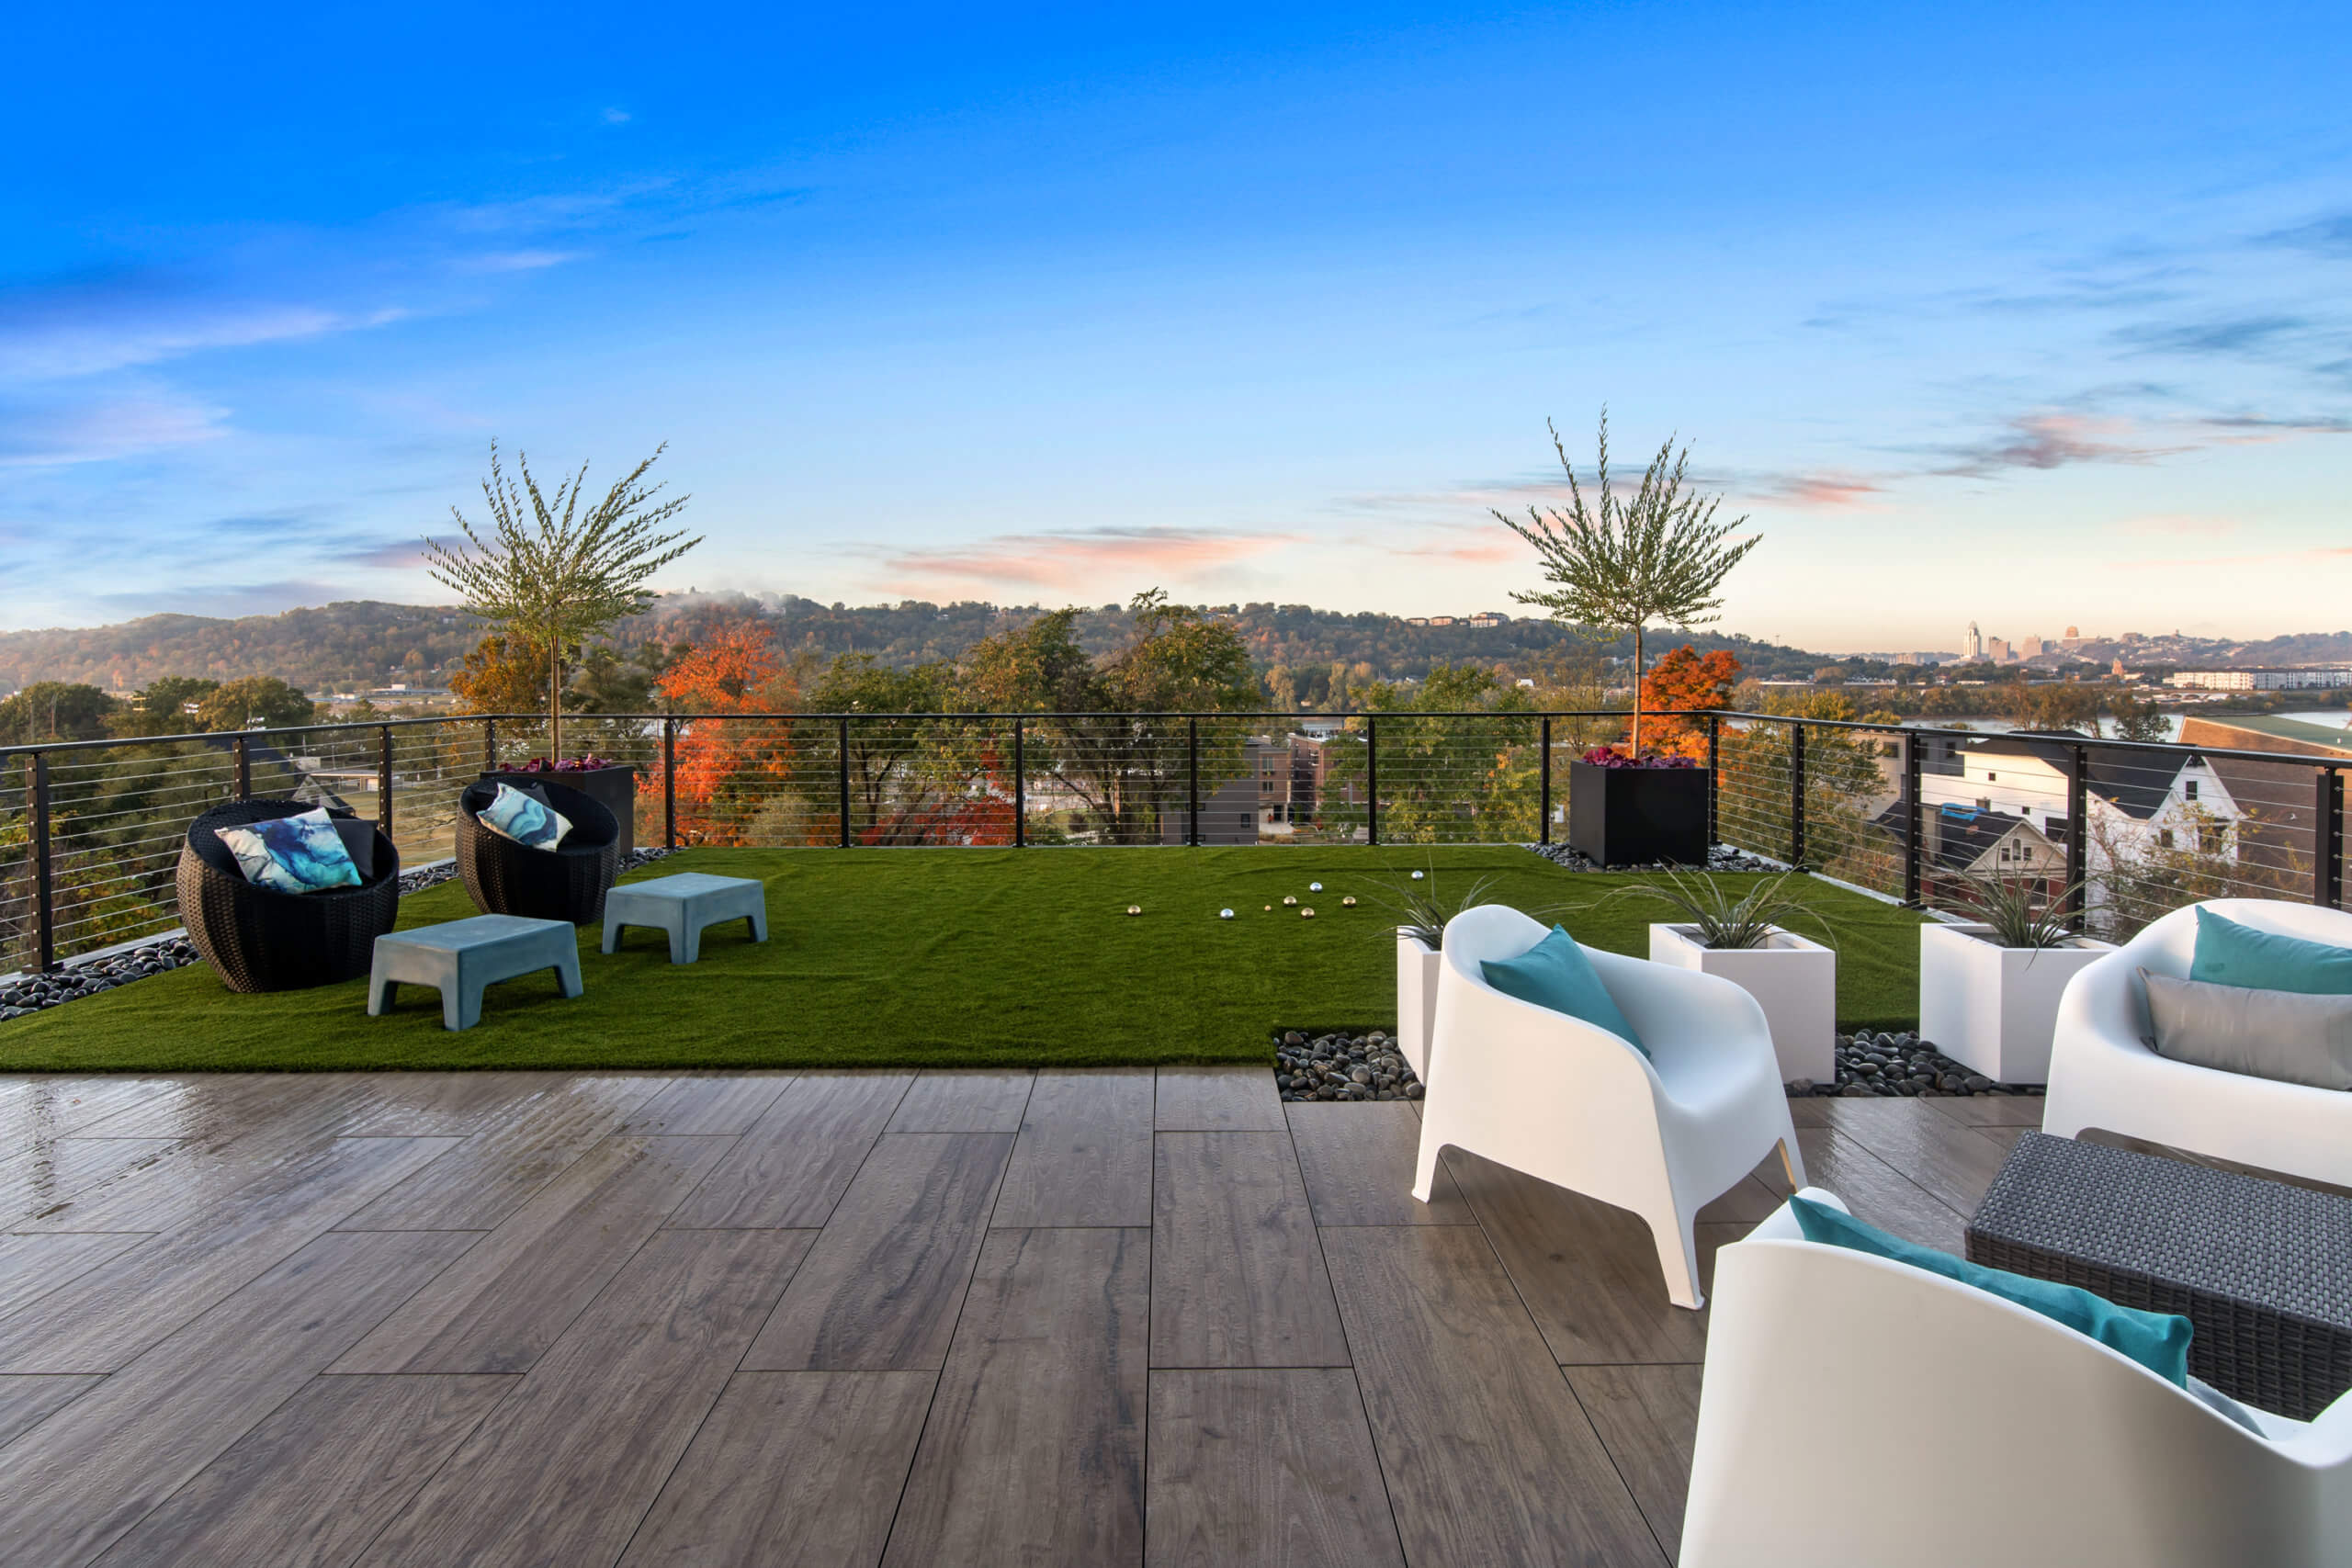 Rooftop patio with astroturf and tile. Designed by Cincinnati Interior Designer, RM Interiors.